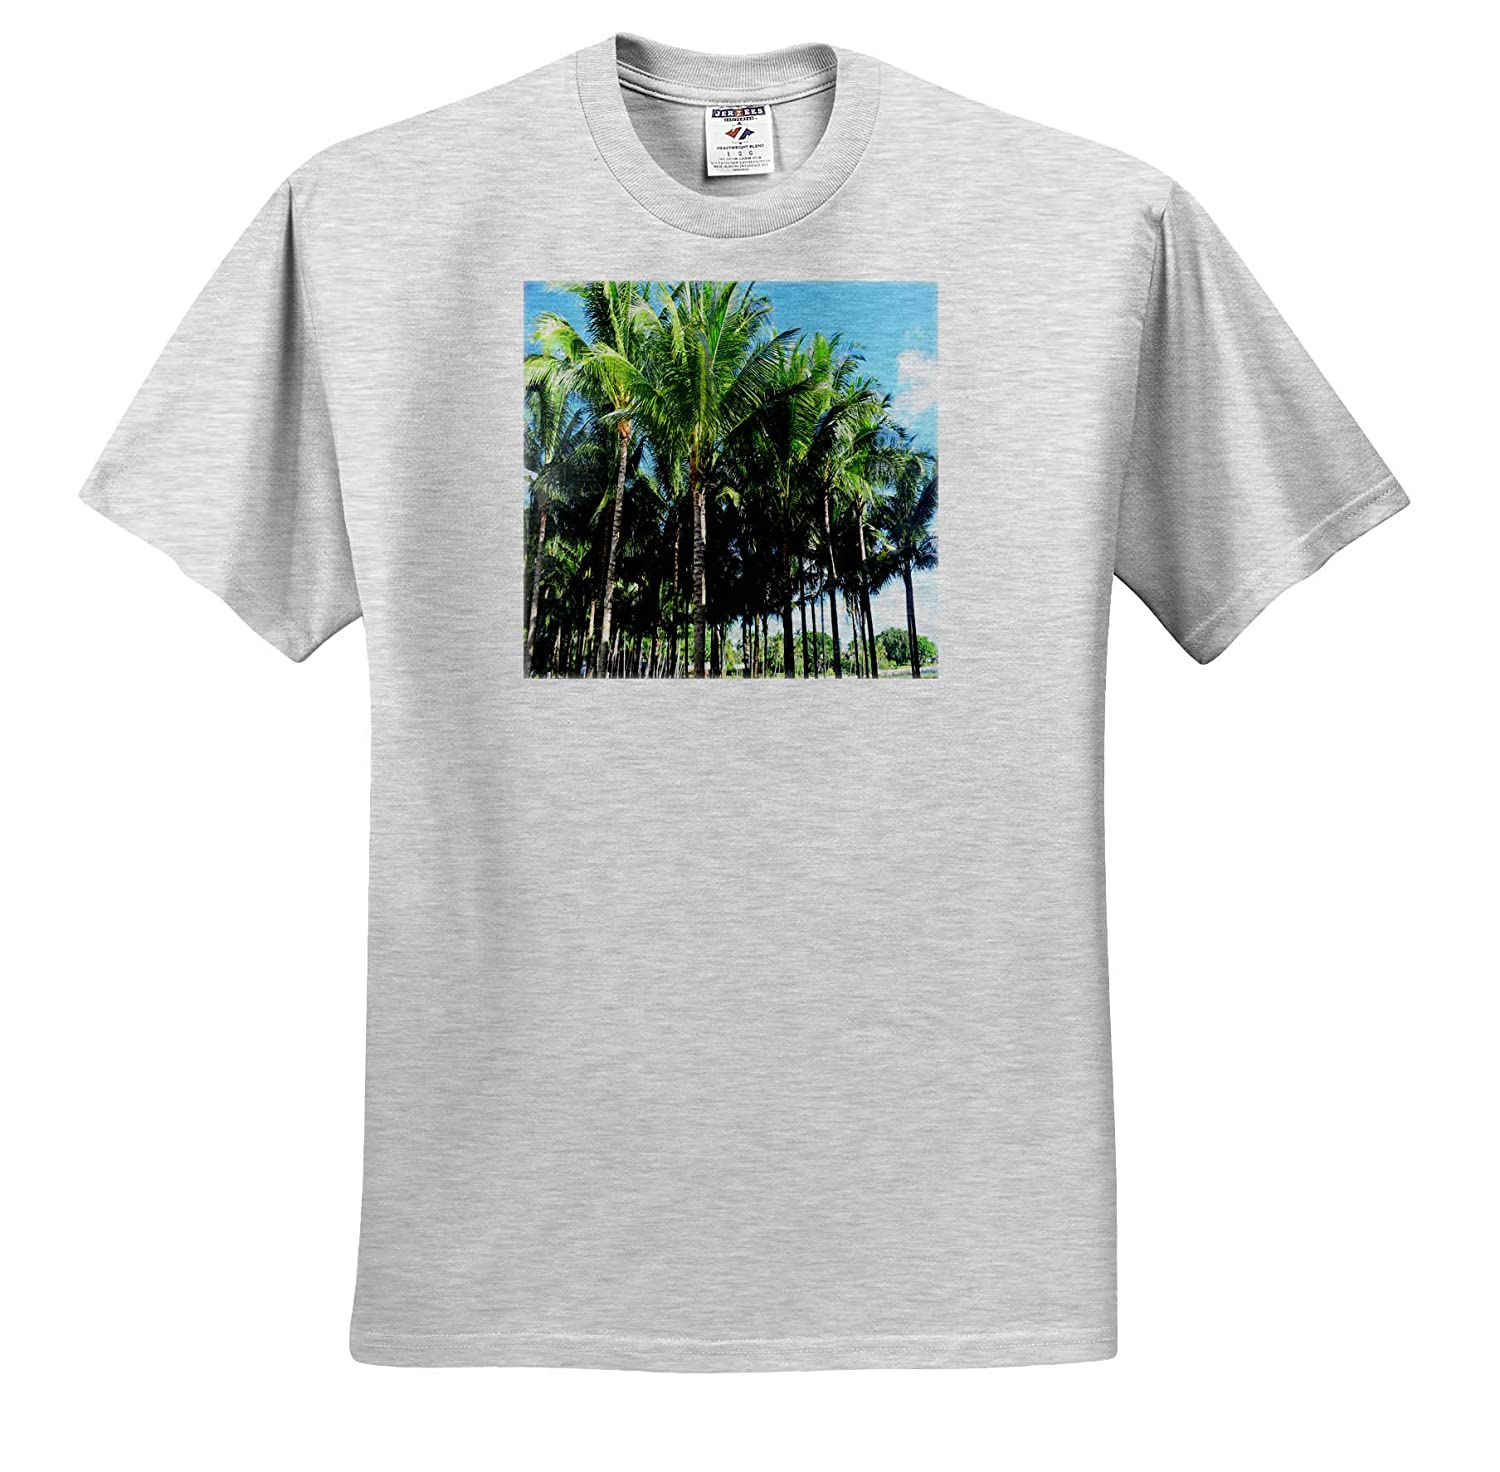 Image of Tight Group of Palm Beach Palms Against Blue Sky T-Shirts Fantastic Florida 3dRose Lens Art by Florene